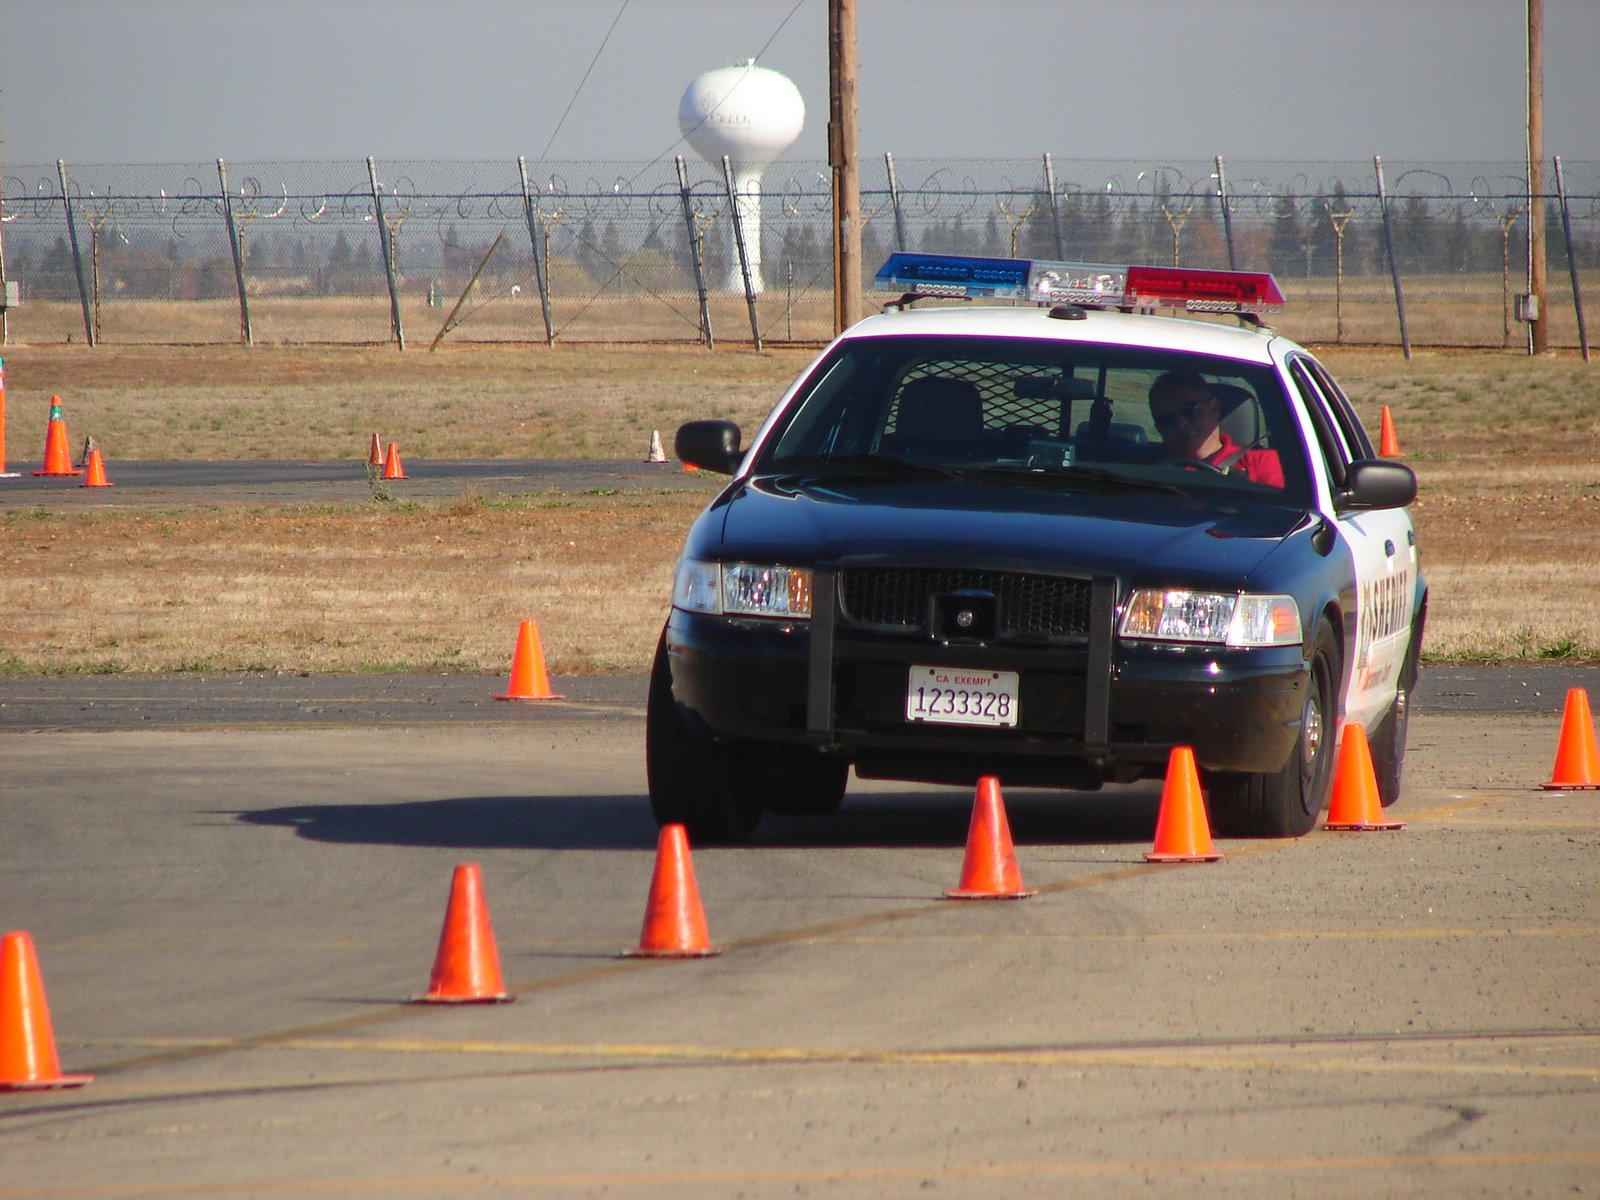 Why You Should Use Your Own Police Vehicle for Training